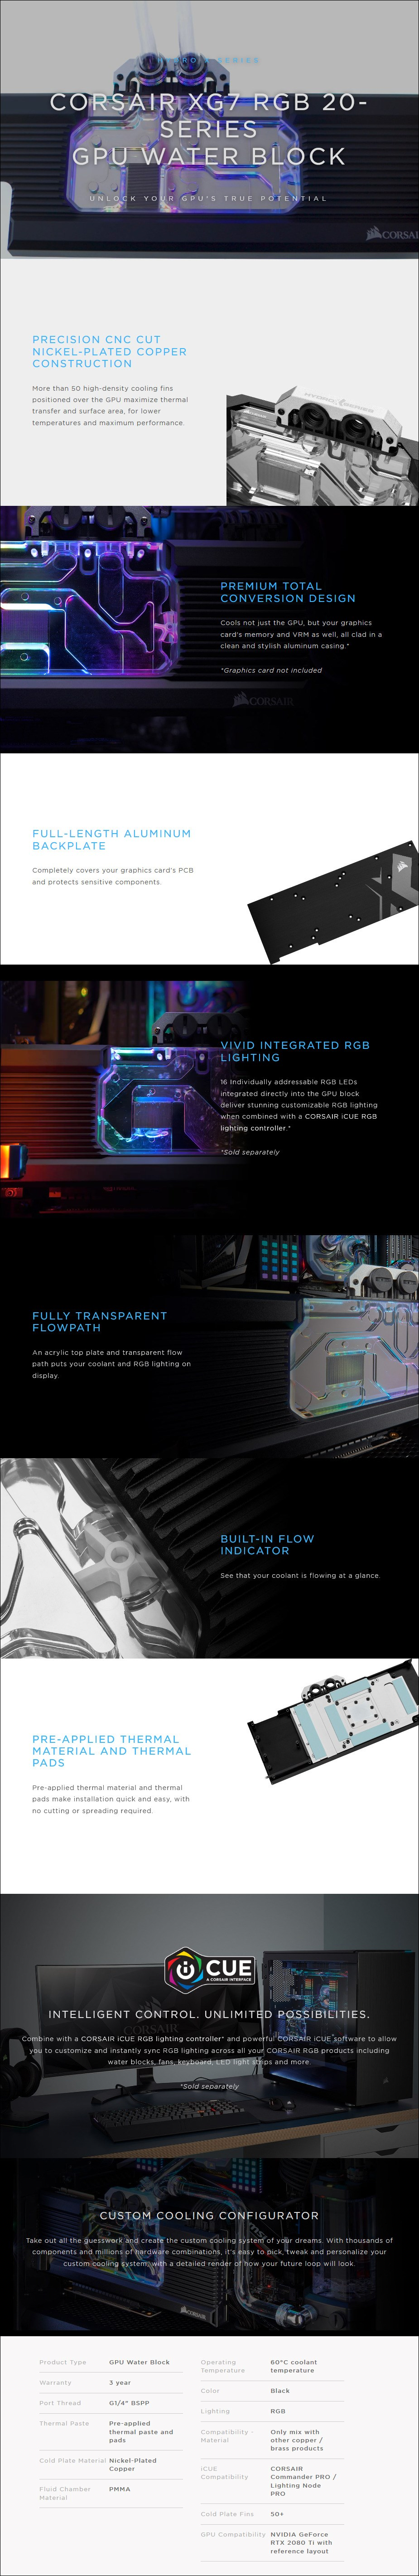 Corsair Hydro X Series XG7 RGB 2080 Ti FE GPU Water Block - Overview 1